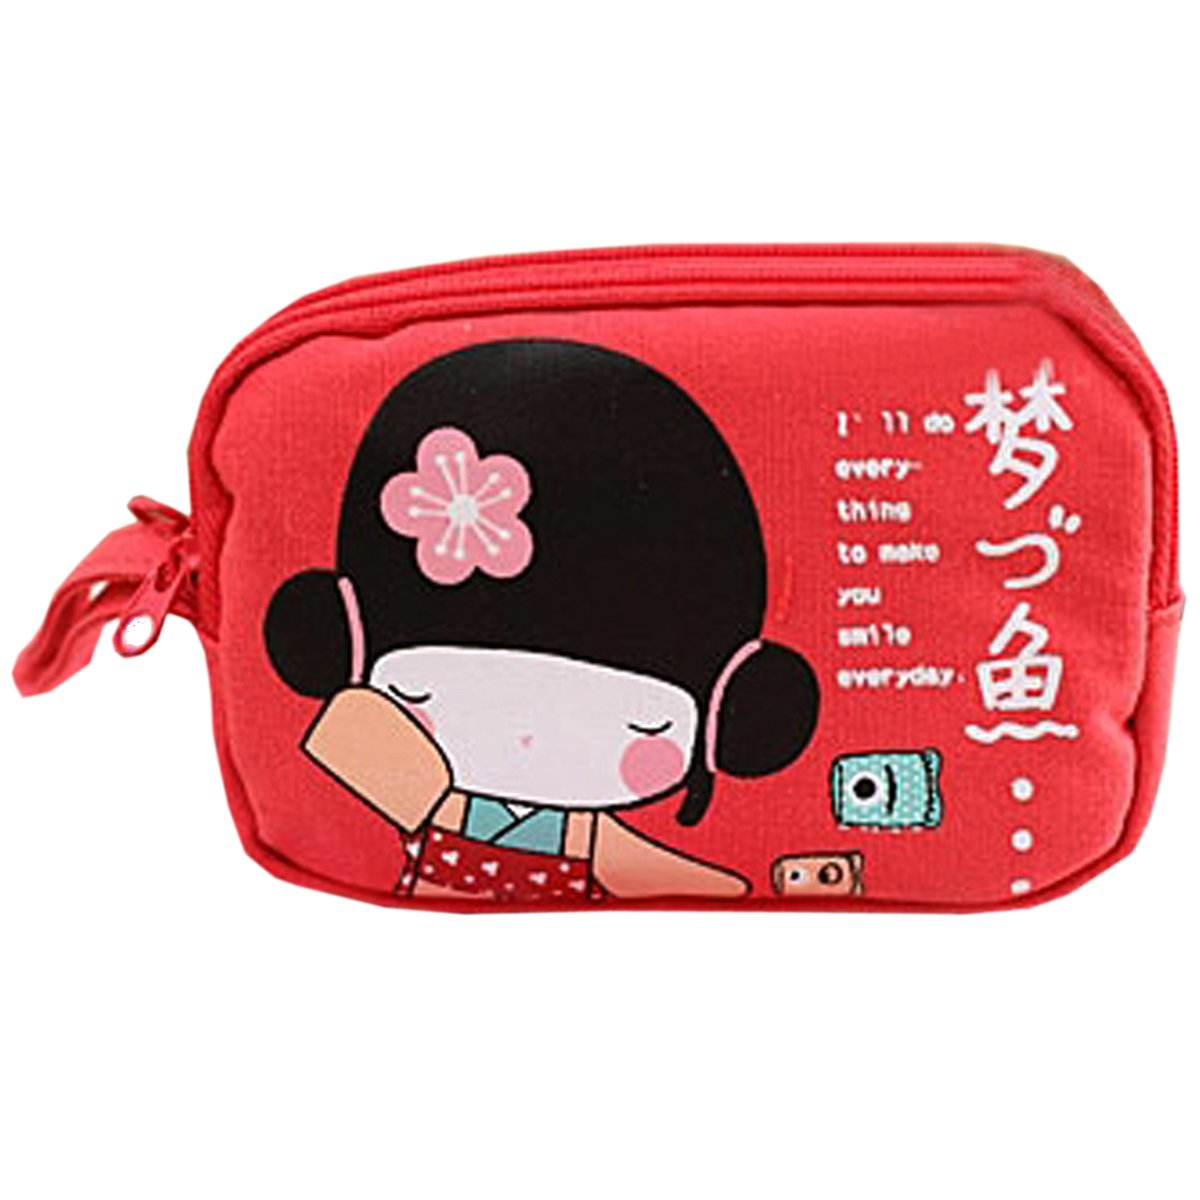 New Cute Japanese Girl Print Canvas Phone Bag Double Zipper Purse Coin Bag Red